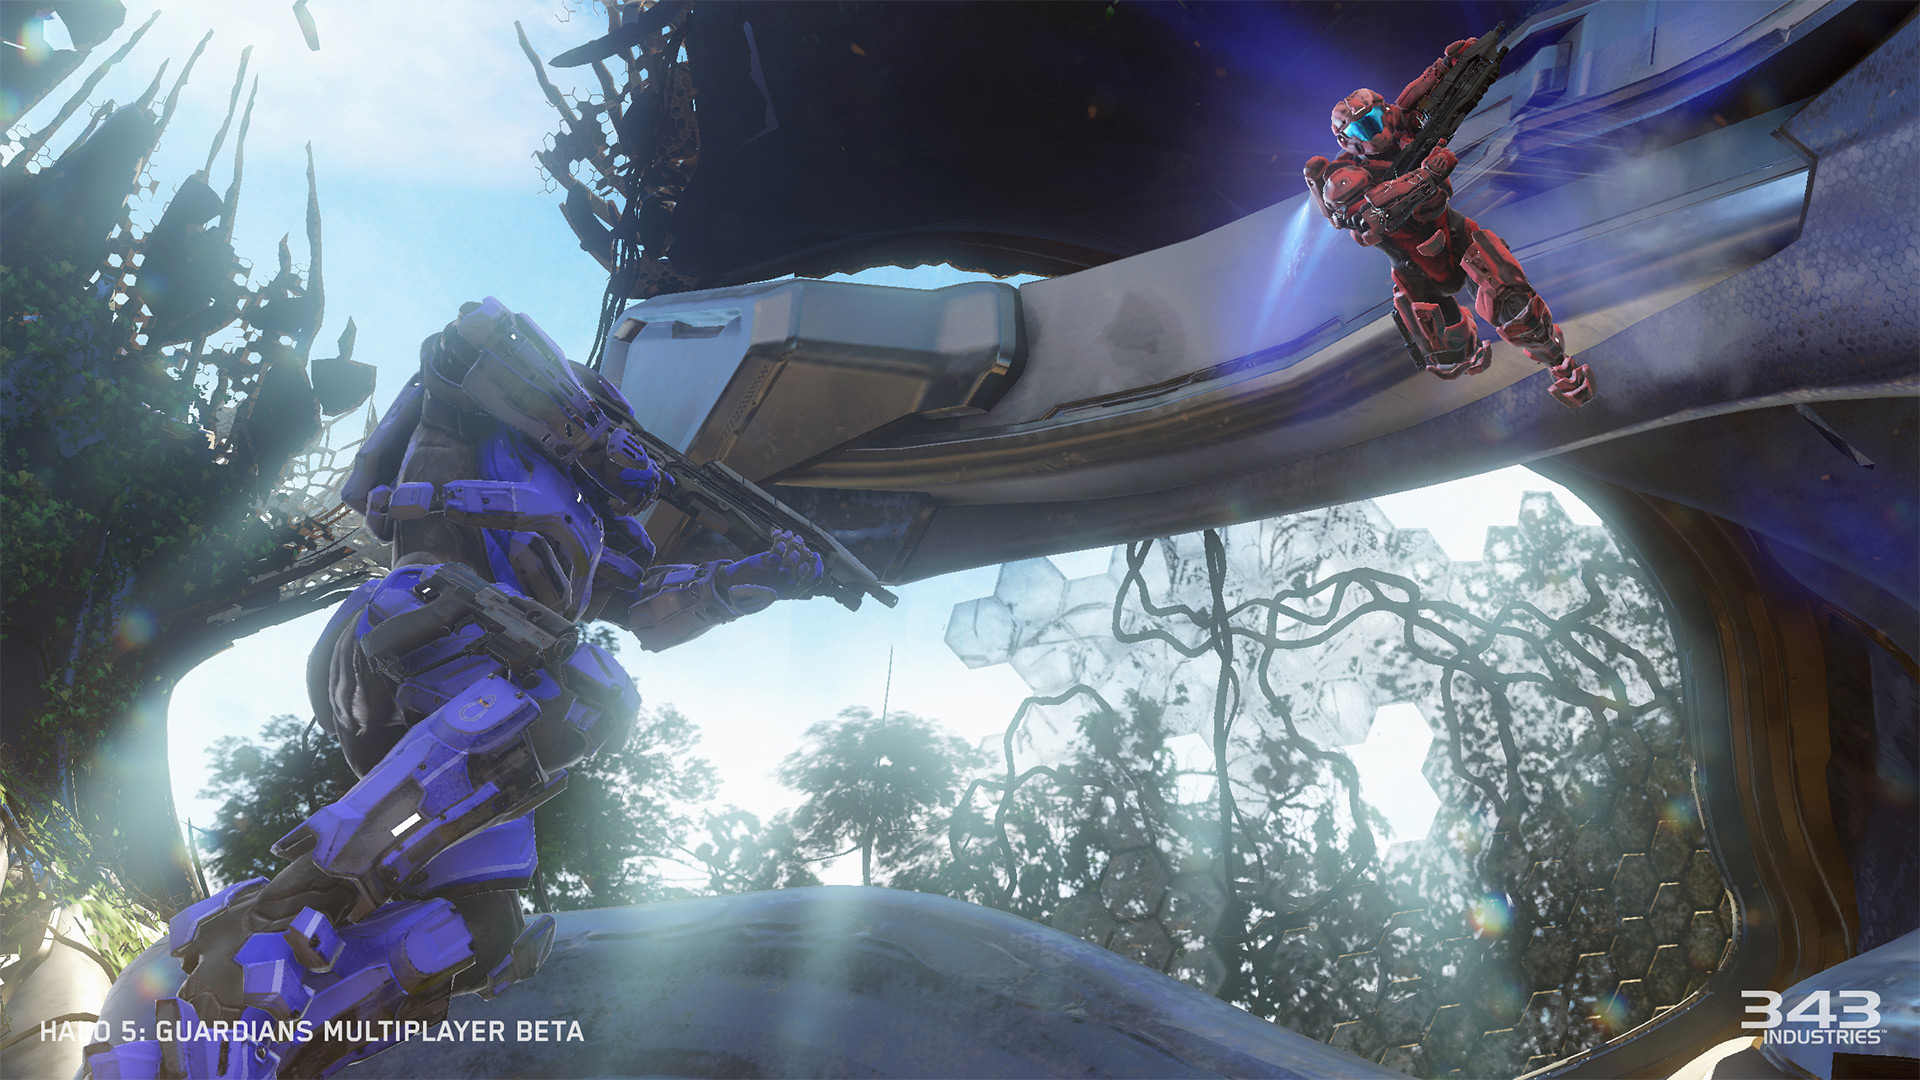 New maps and a new weapon come to the Halo 5 beta